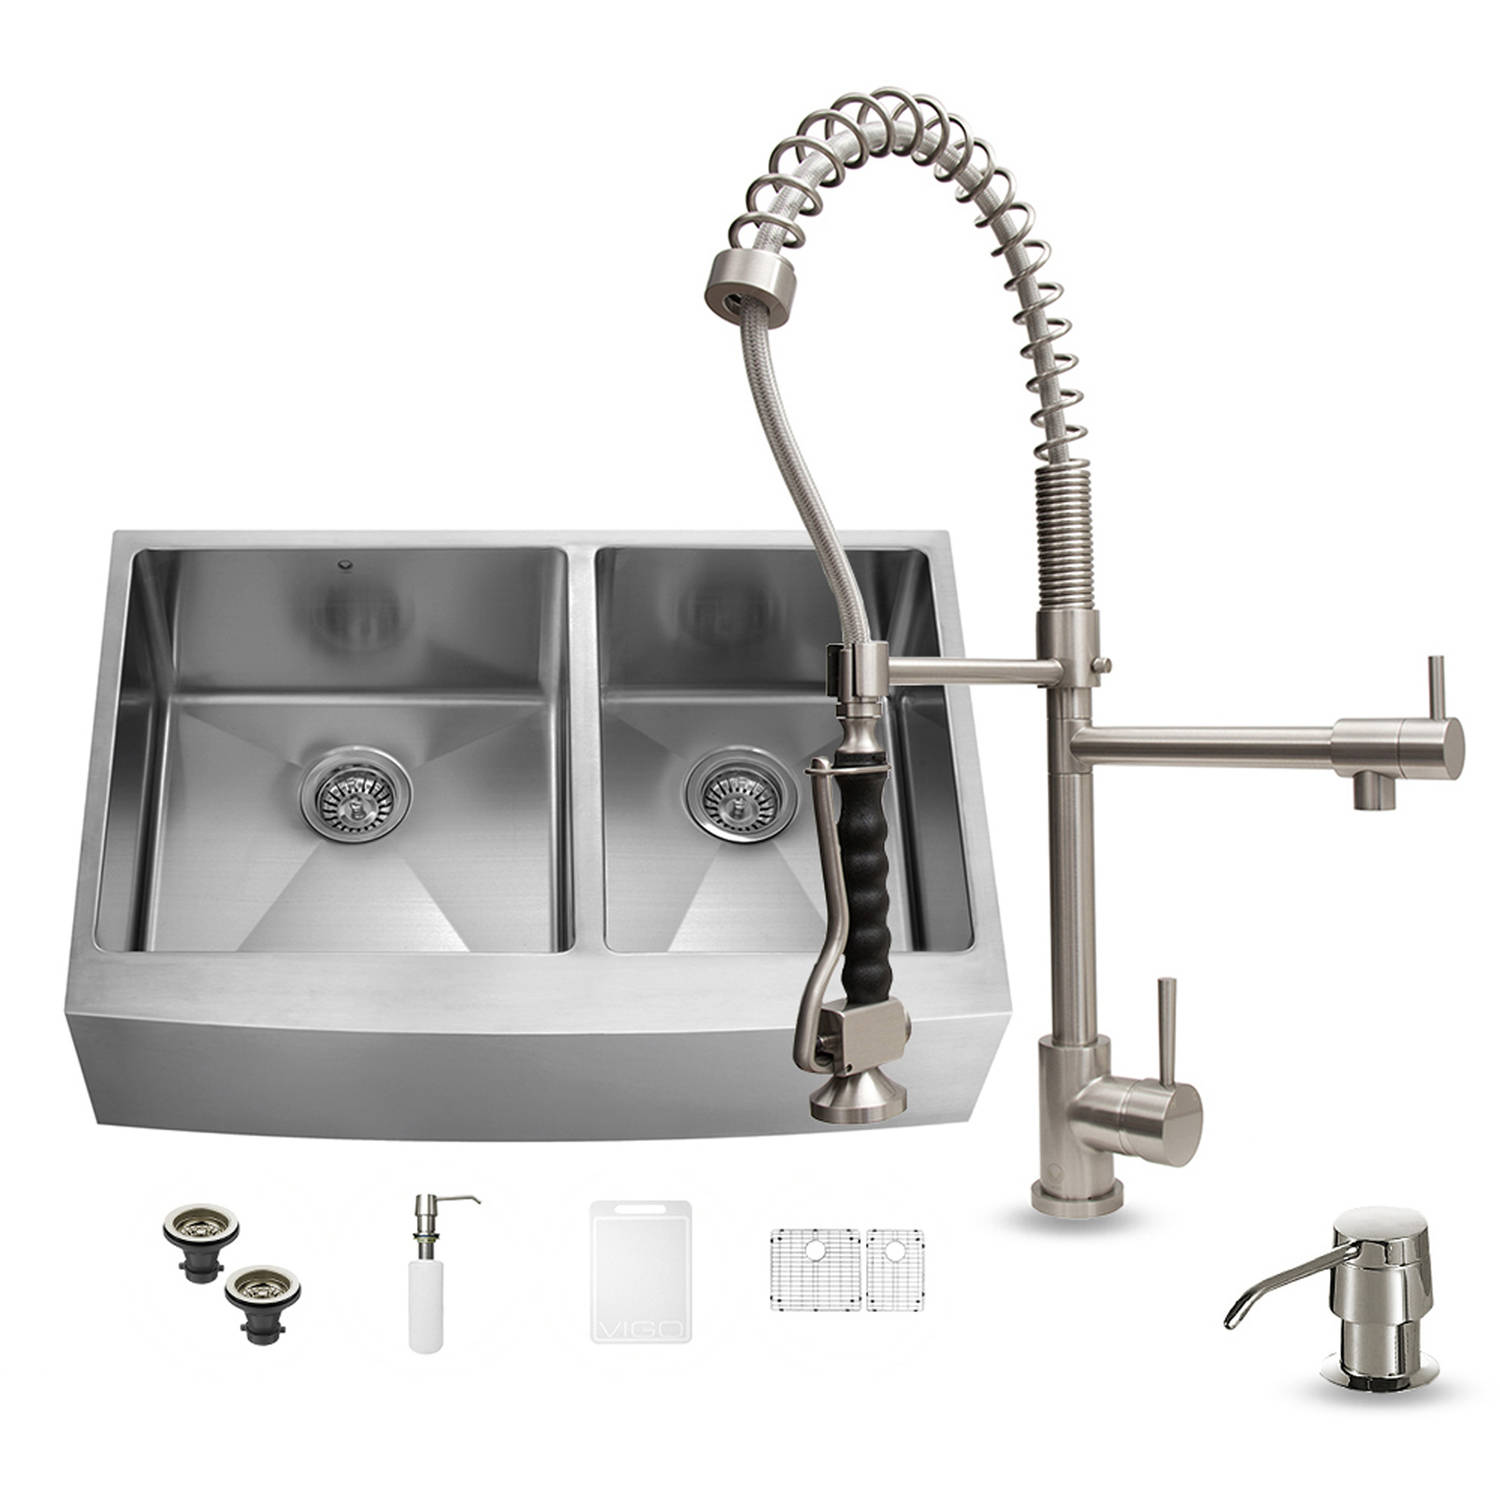 Vigo Farmhouse Stainless Steel Kitchen Sink, Faucet, 2 Grids, 2 Strainers and Dispenser